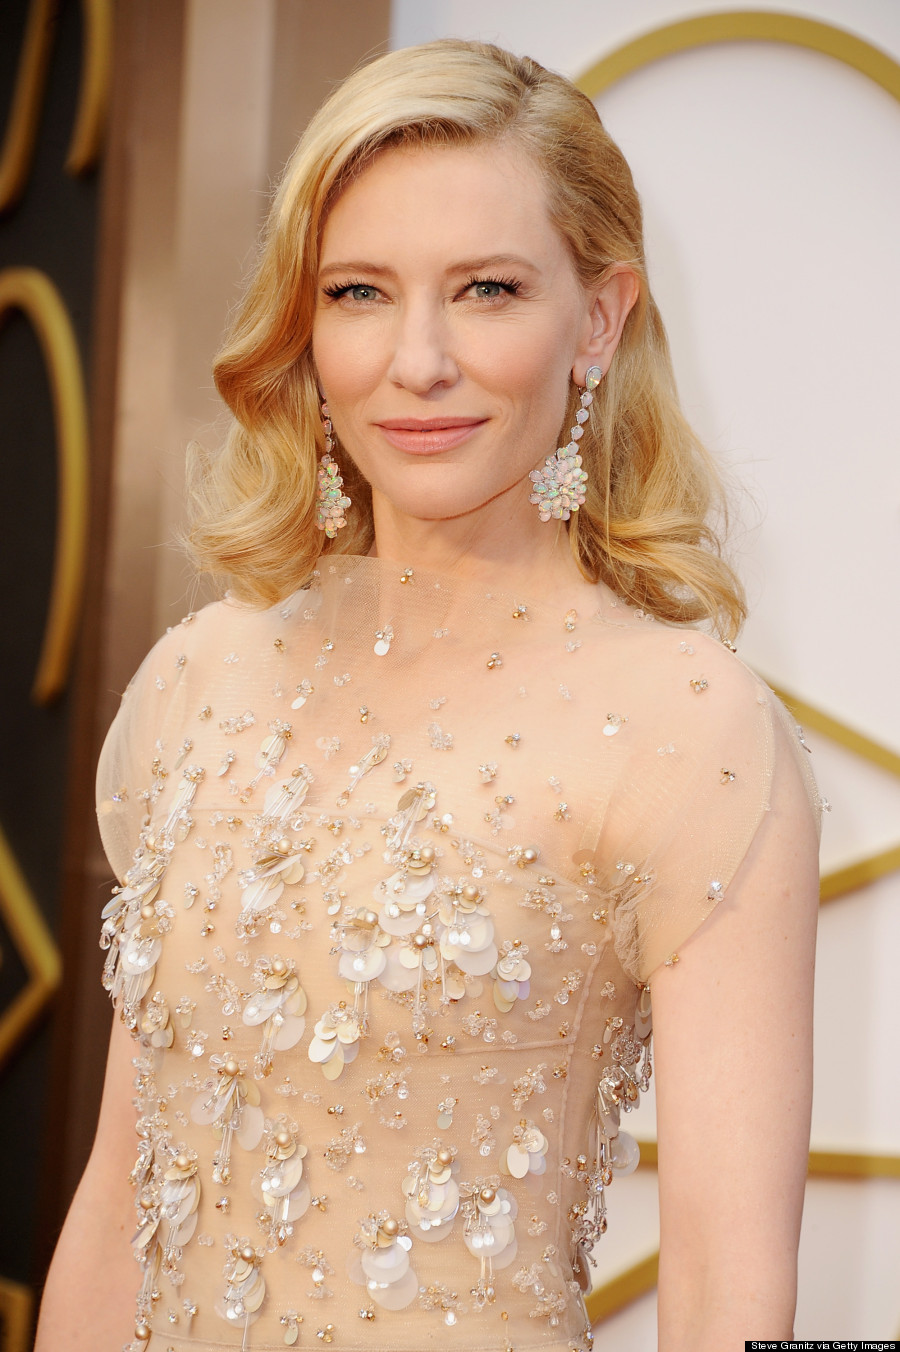 cate blanchett oscars 2014 armani gown washes her out